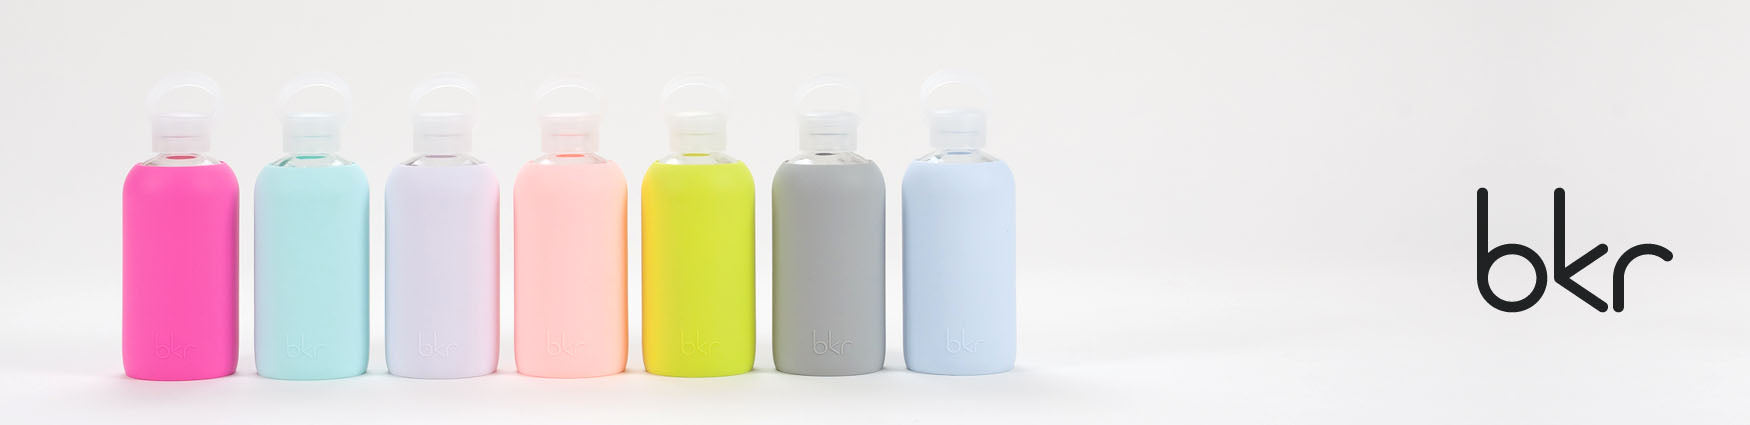 bkr bottles | shop online at Roo's Beach UK